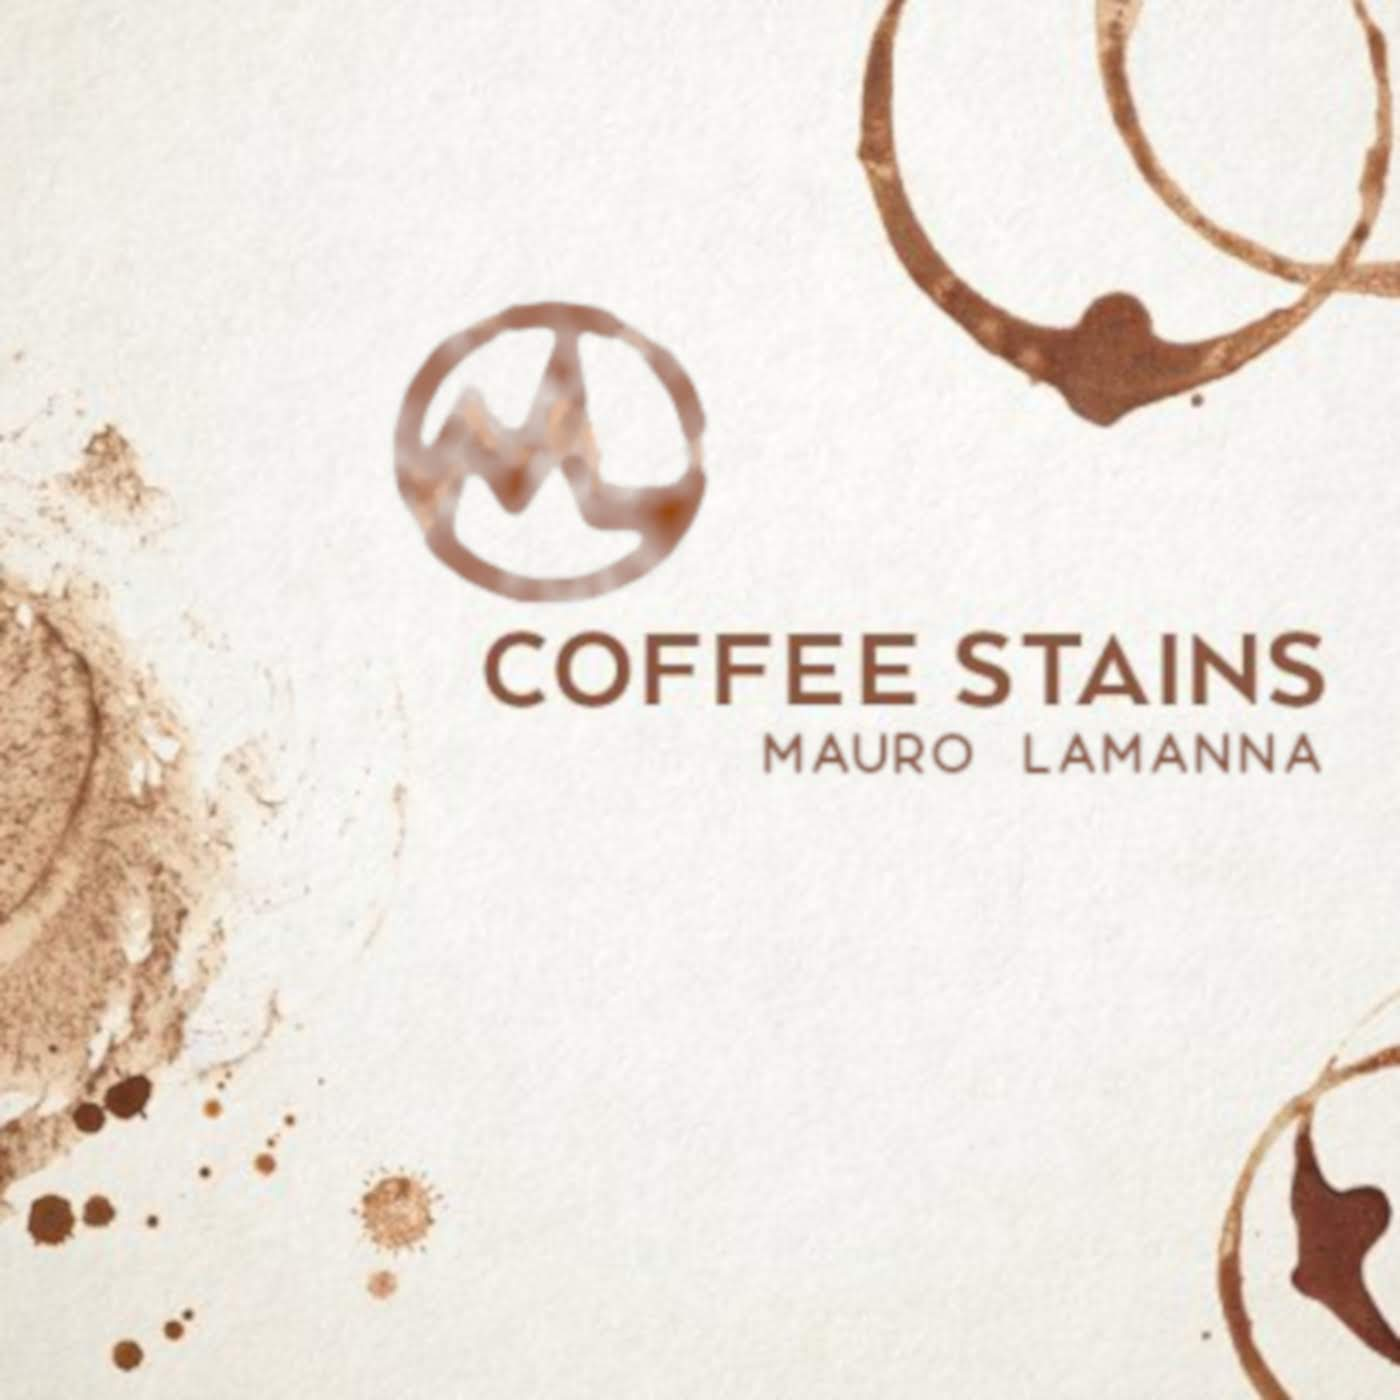 Coffee stains - Mauro Lamanna - Artwork